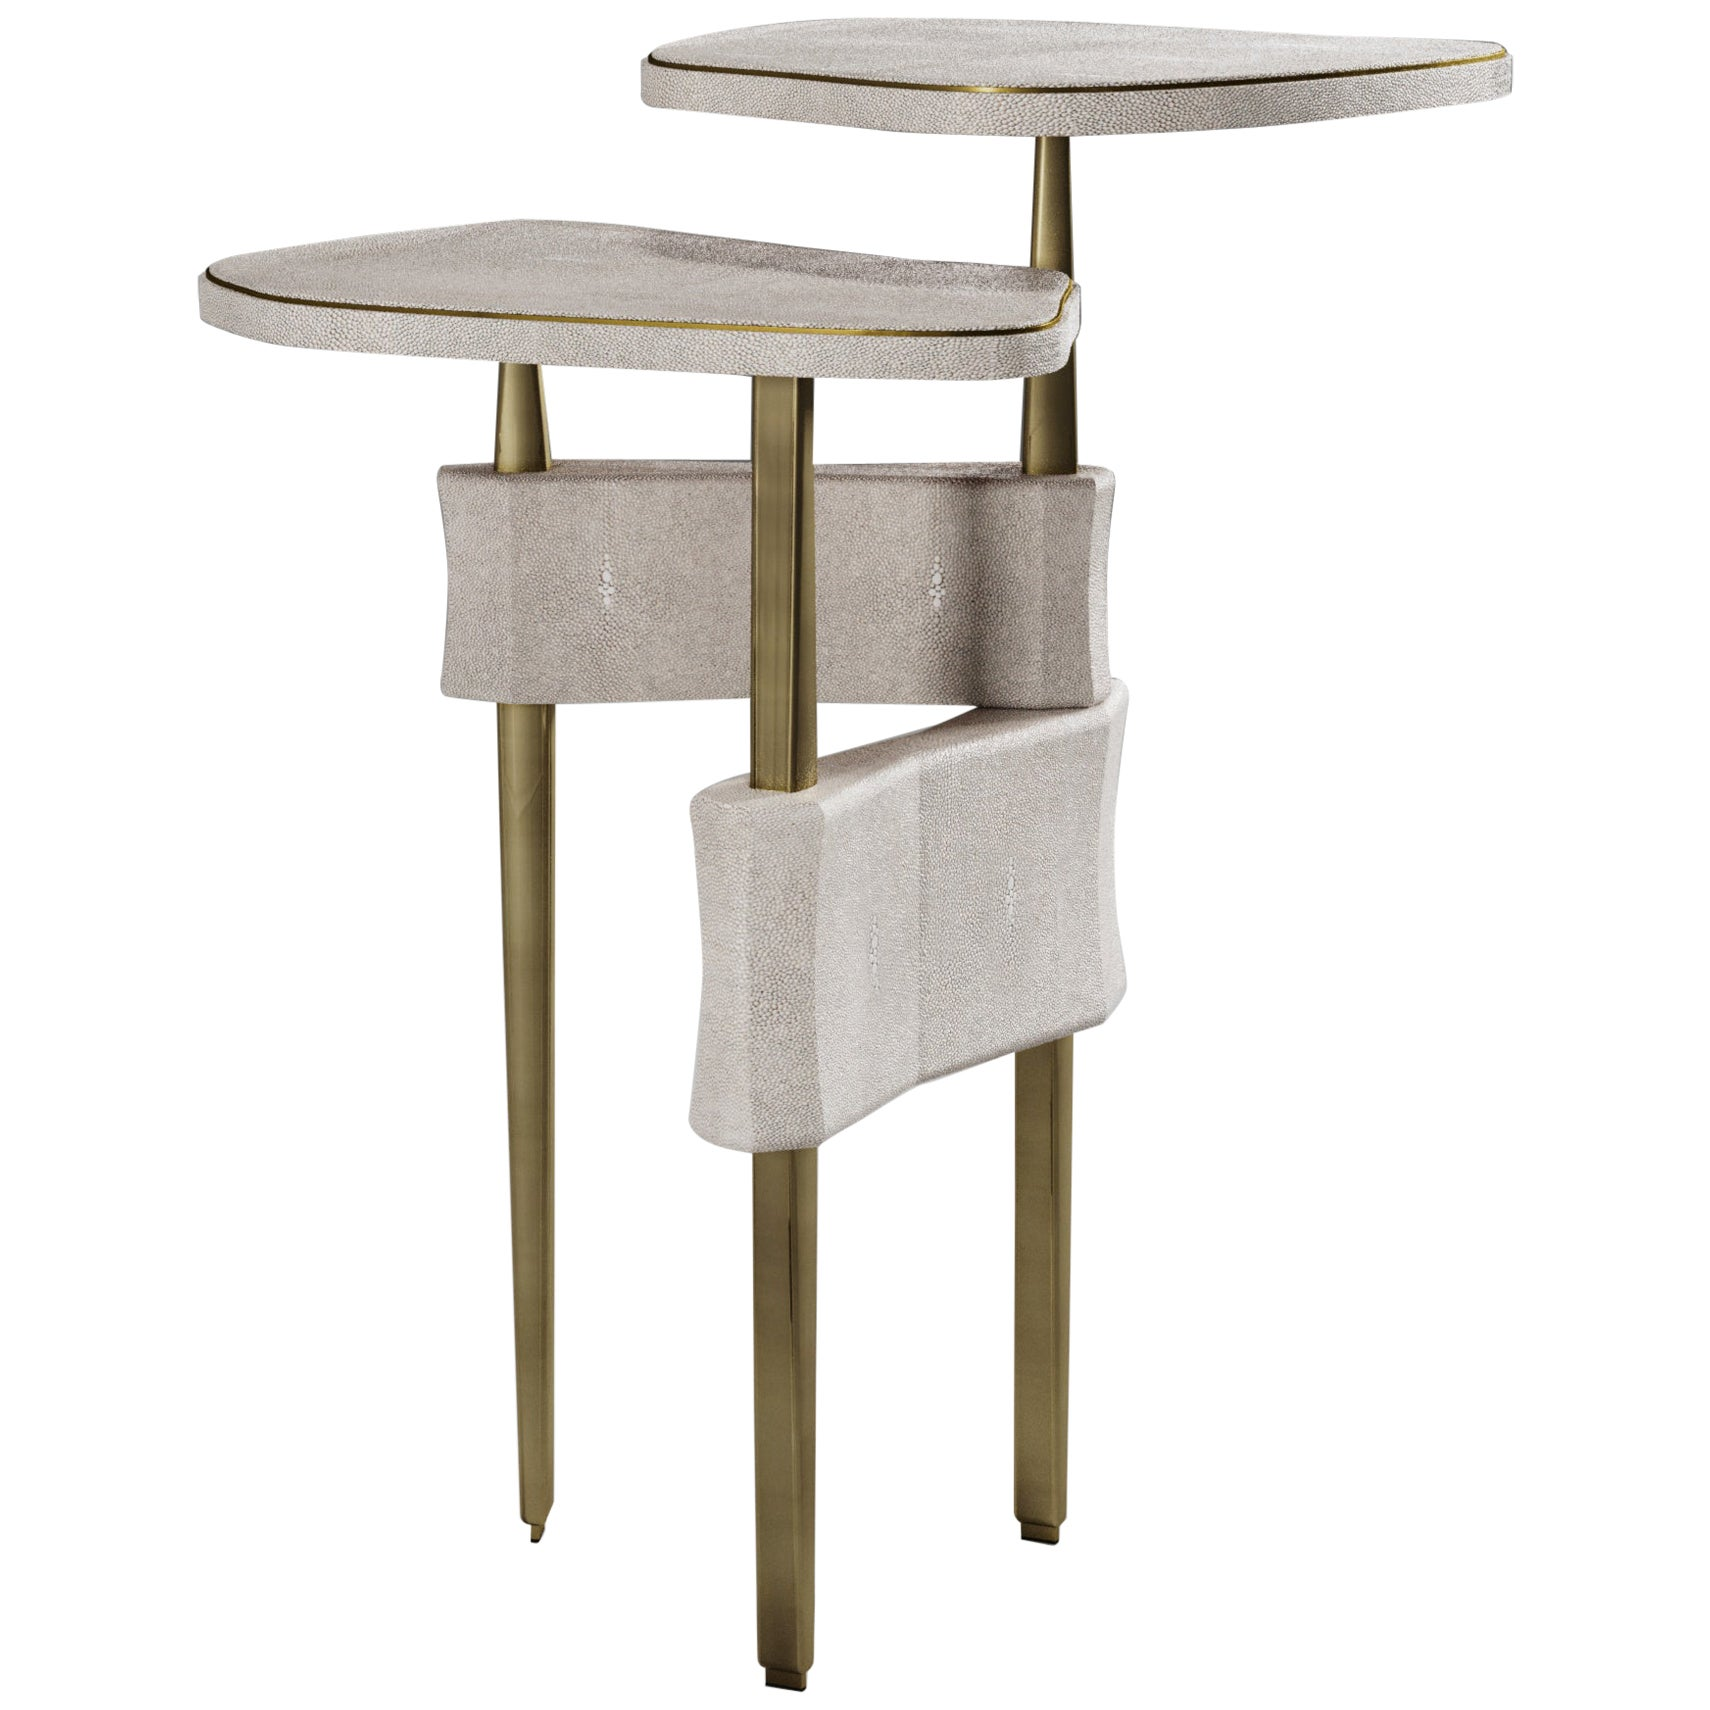 Two Top Side Table in Cream Shagreen and Bronze Patina Brass by Kifu Paris